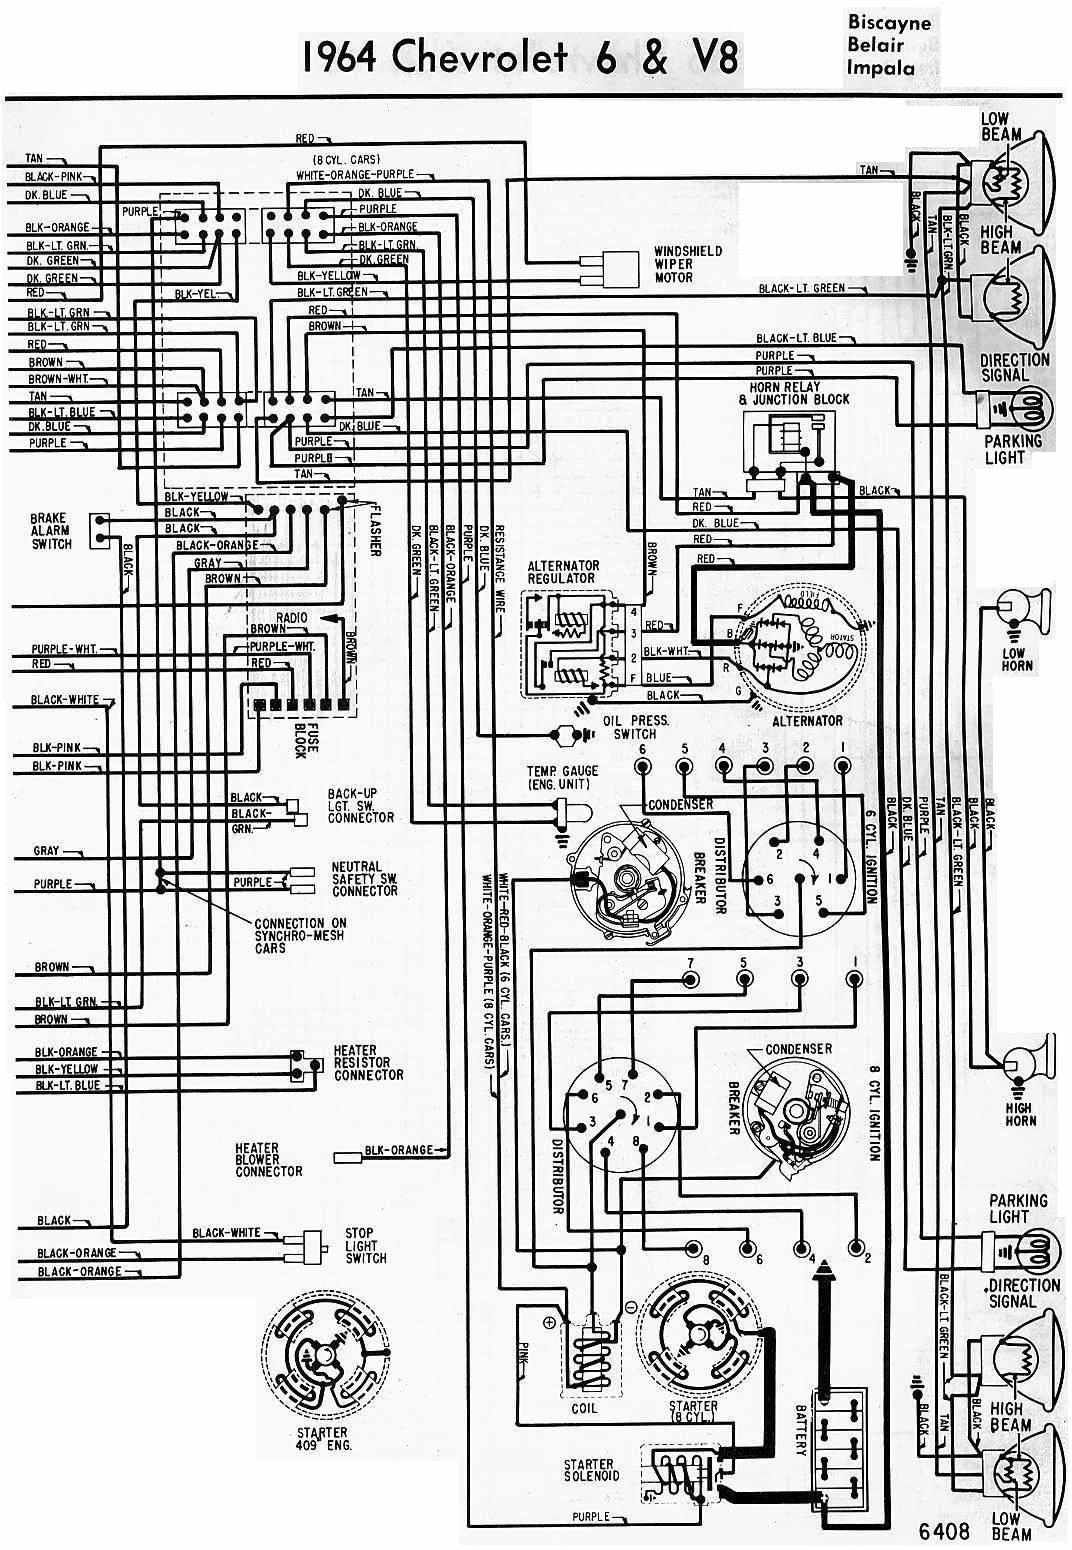 Alternator Fuse Diagram 2006 Chevy Impala Opinions About Wiring 2000 Truck Tail Light Somurich Com Rh Starter 2002